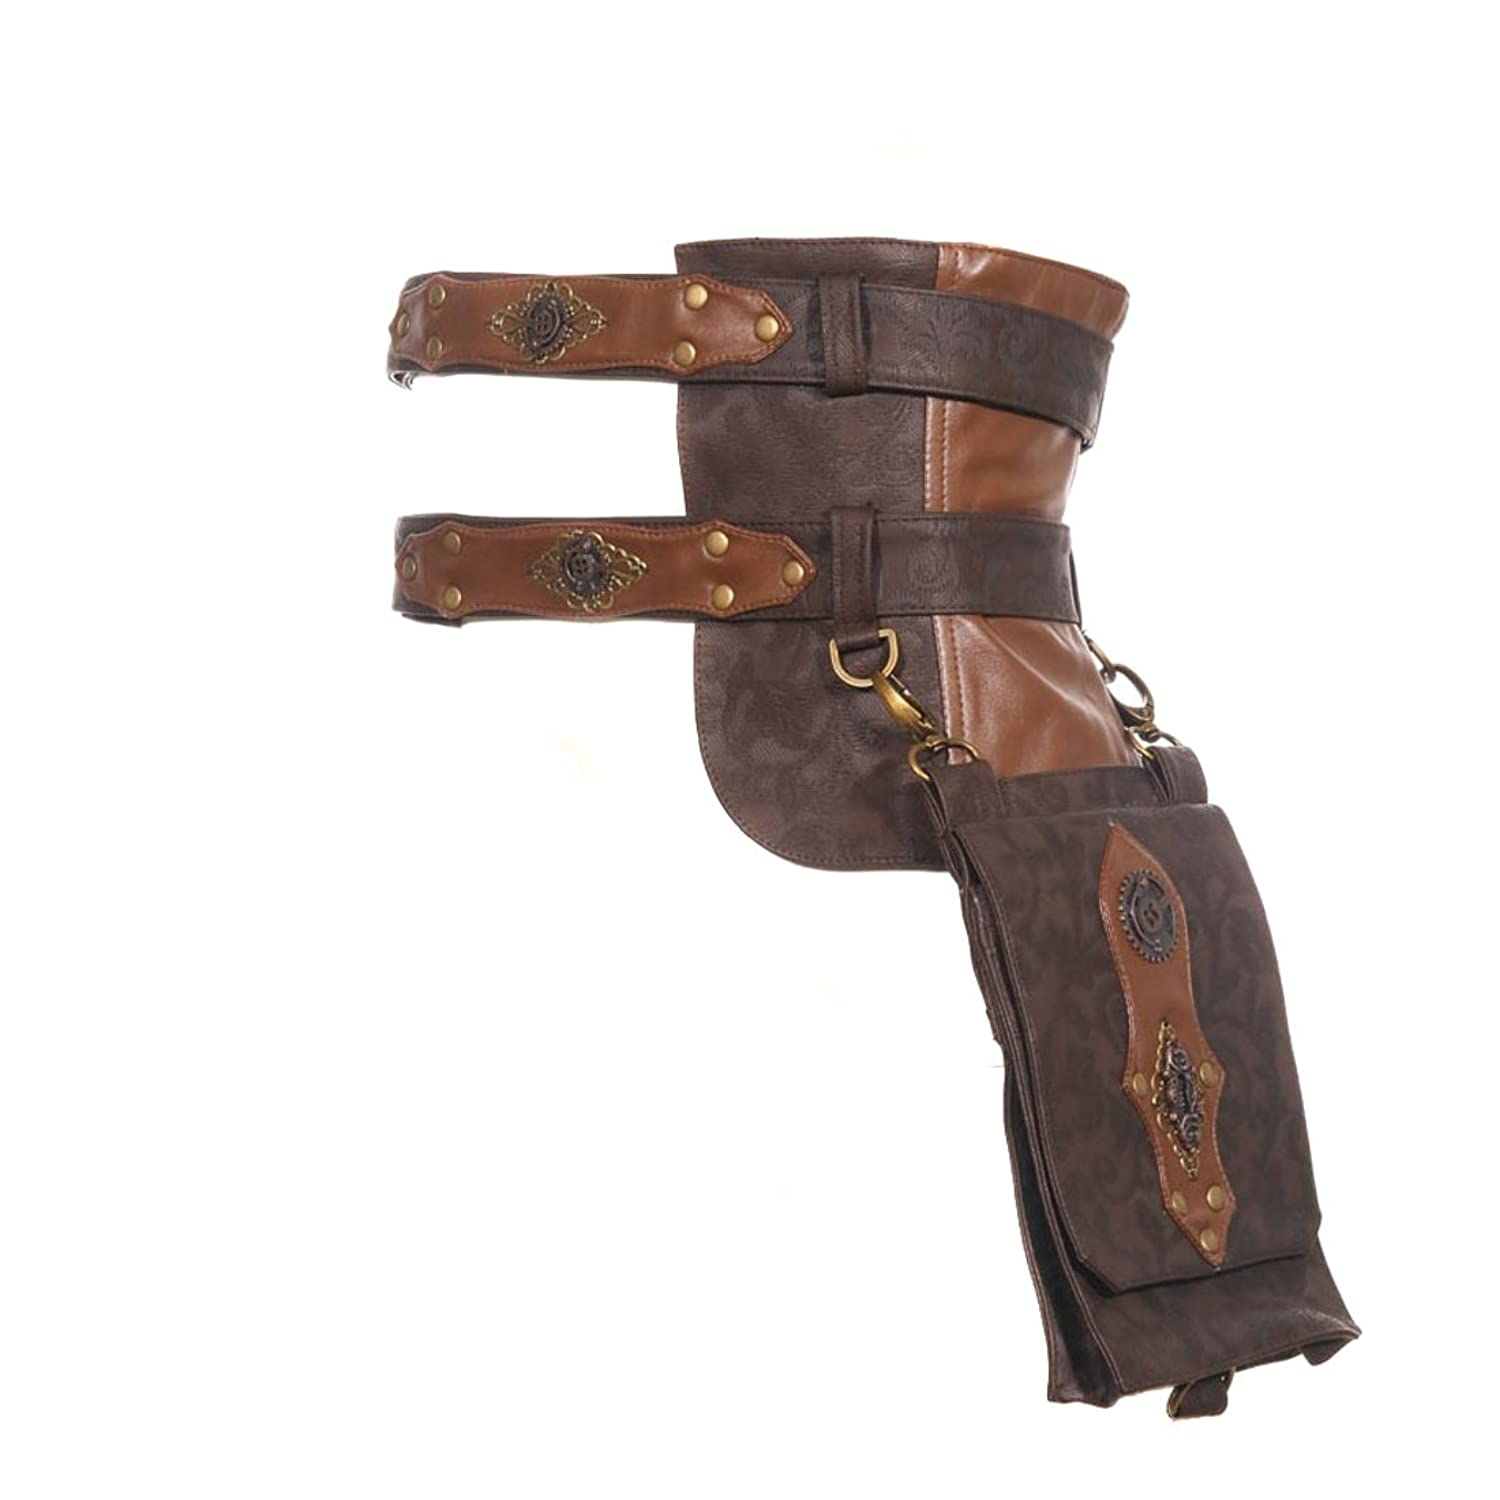 Steampunk Accessories | Goggles, Gears, Glasses, Guns, Mask Steampunk Messenger Bags $52.22 AT vintagedancer.com